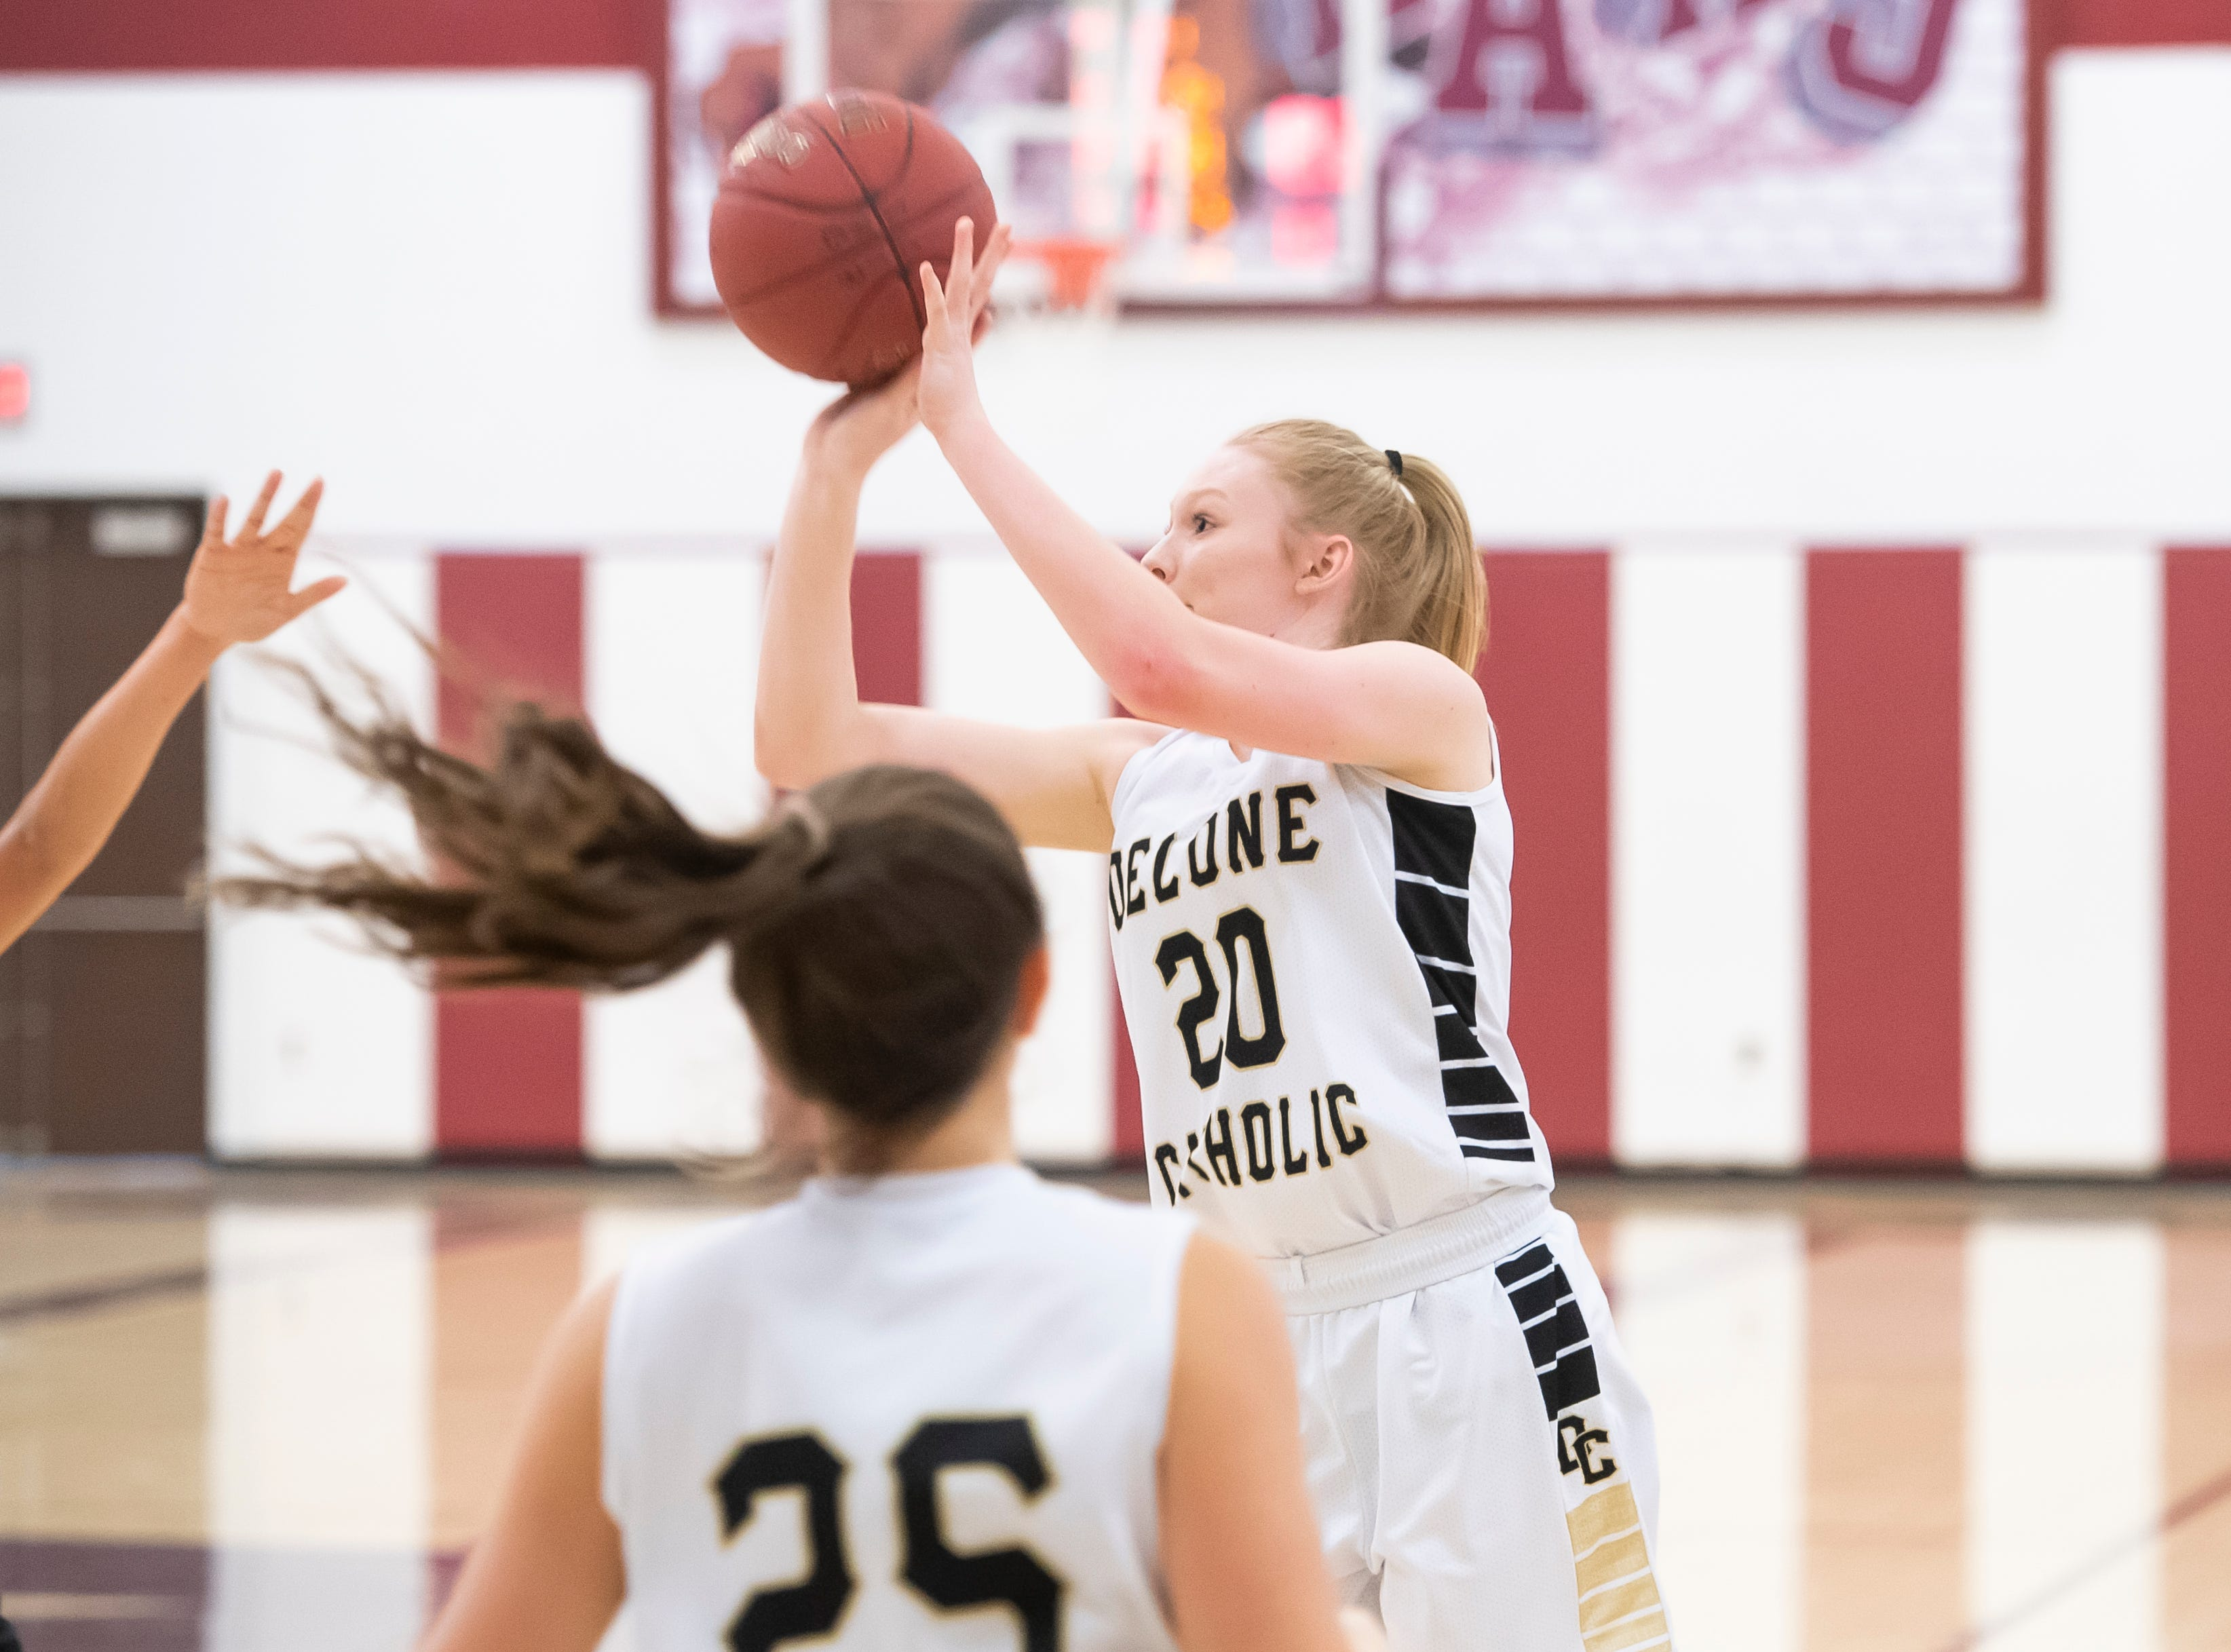 Delone Catholic's Brooke Lawyer takes a 3-point shot during a PIAA 3A quarterfinal against Neshannock in Altoona, Pa., on Friday, March 15, 2019. Lawyer finished the game with 11 points (including one 3-pointer) as the Squirettes won 50-41.